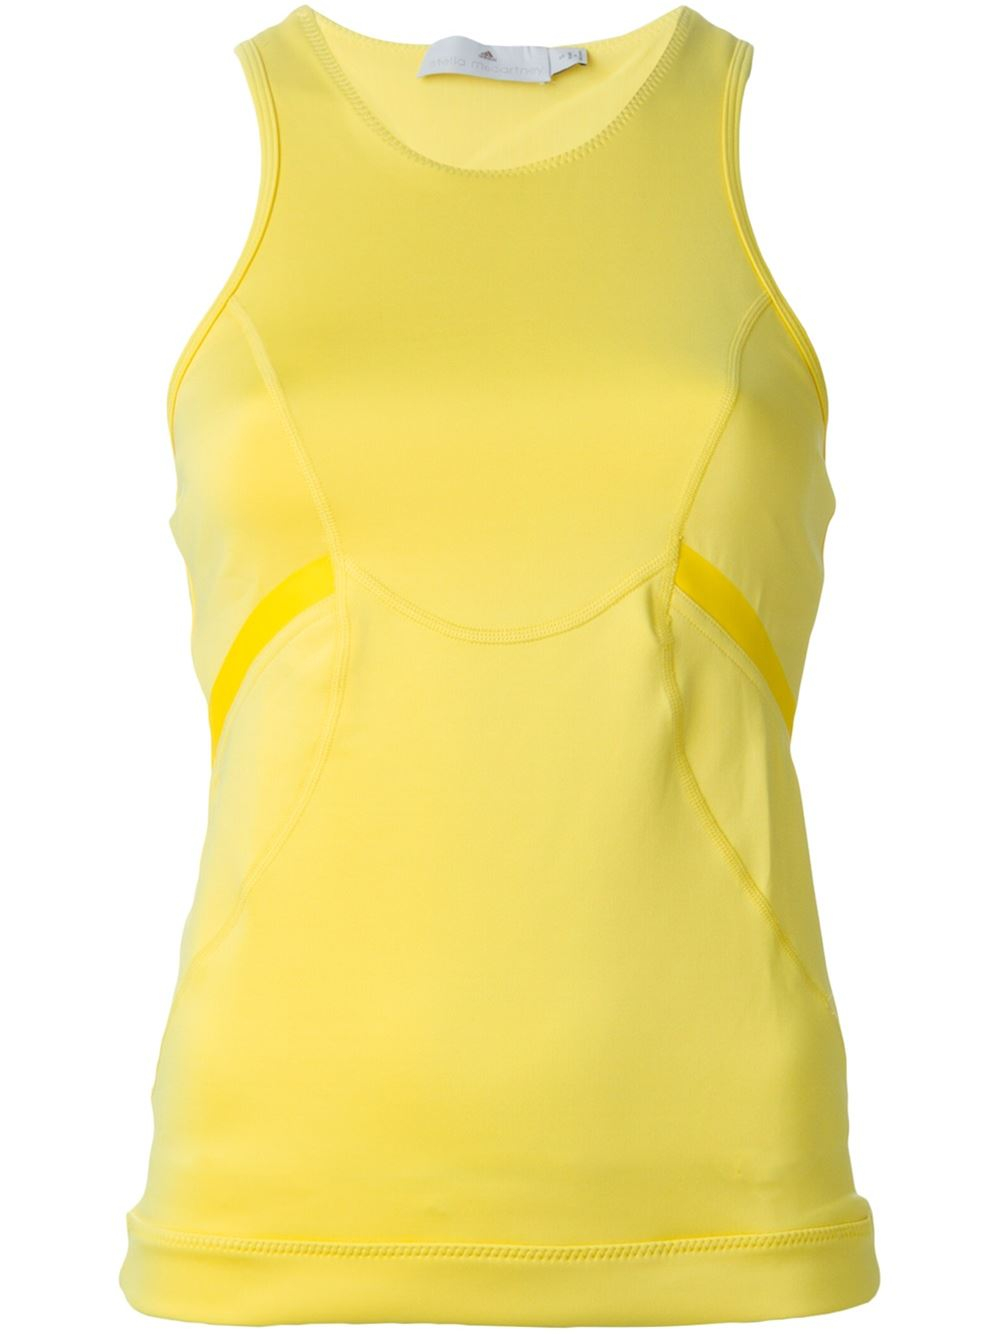 adidas by stella mccartney 39 studio 39 top in yellow yellow. Black Bedroom Furniture Sets. Home Design Ideas